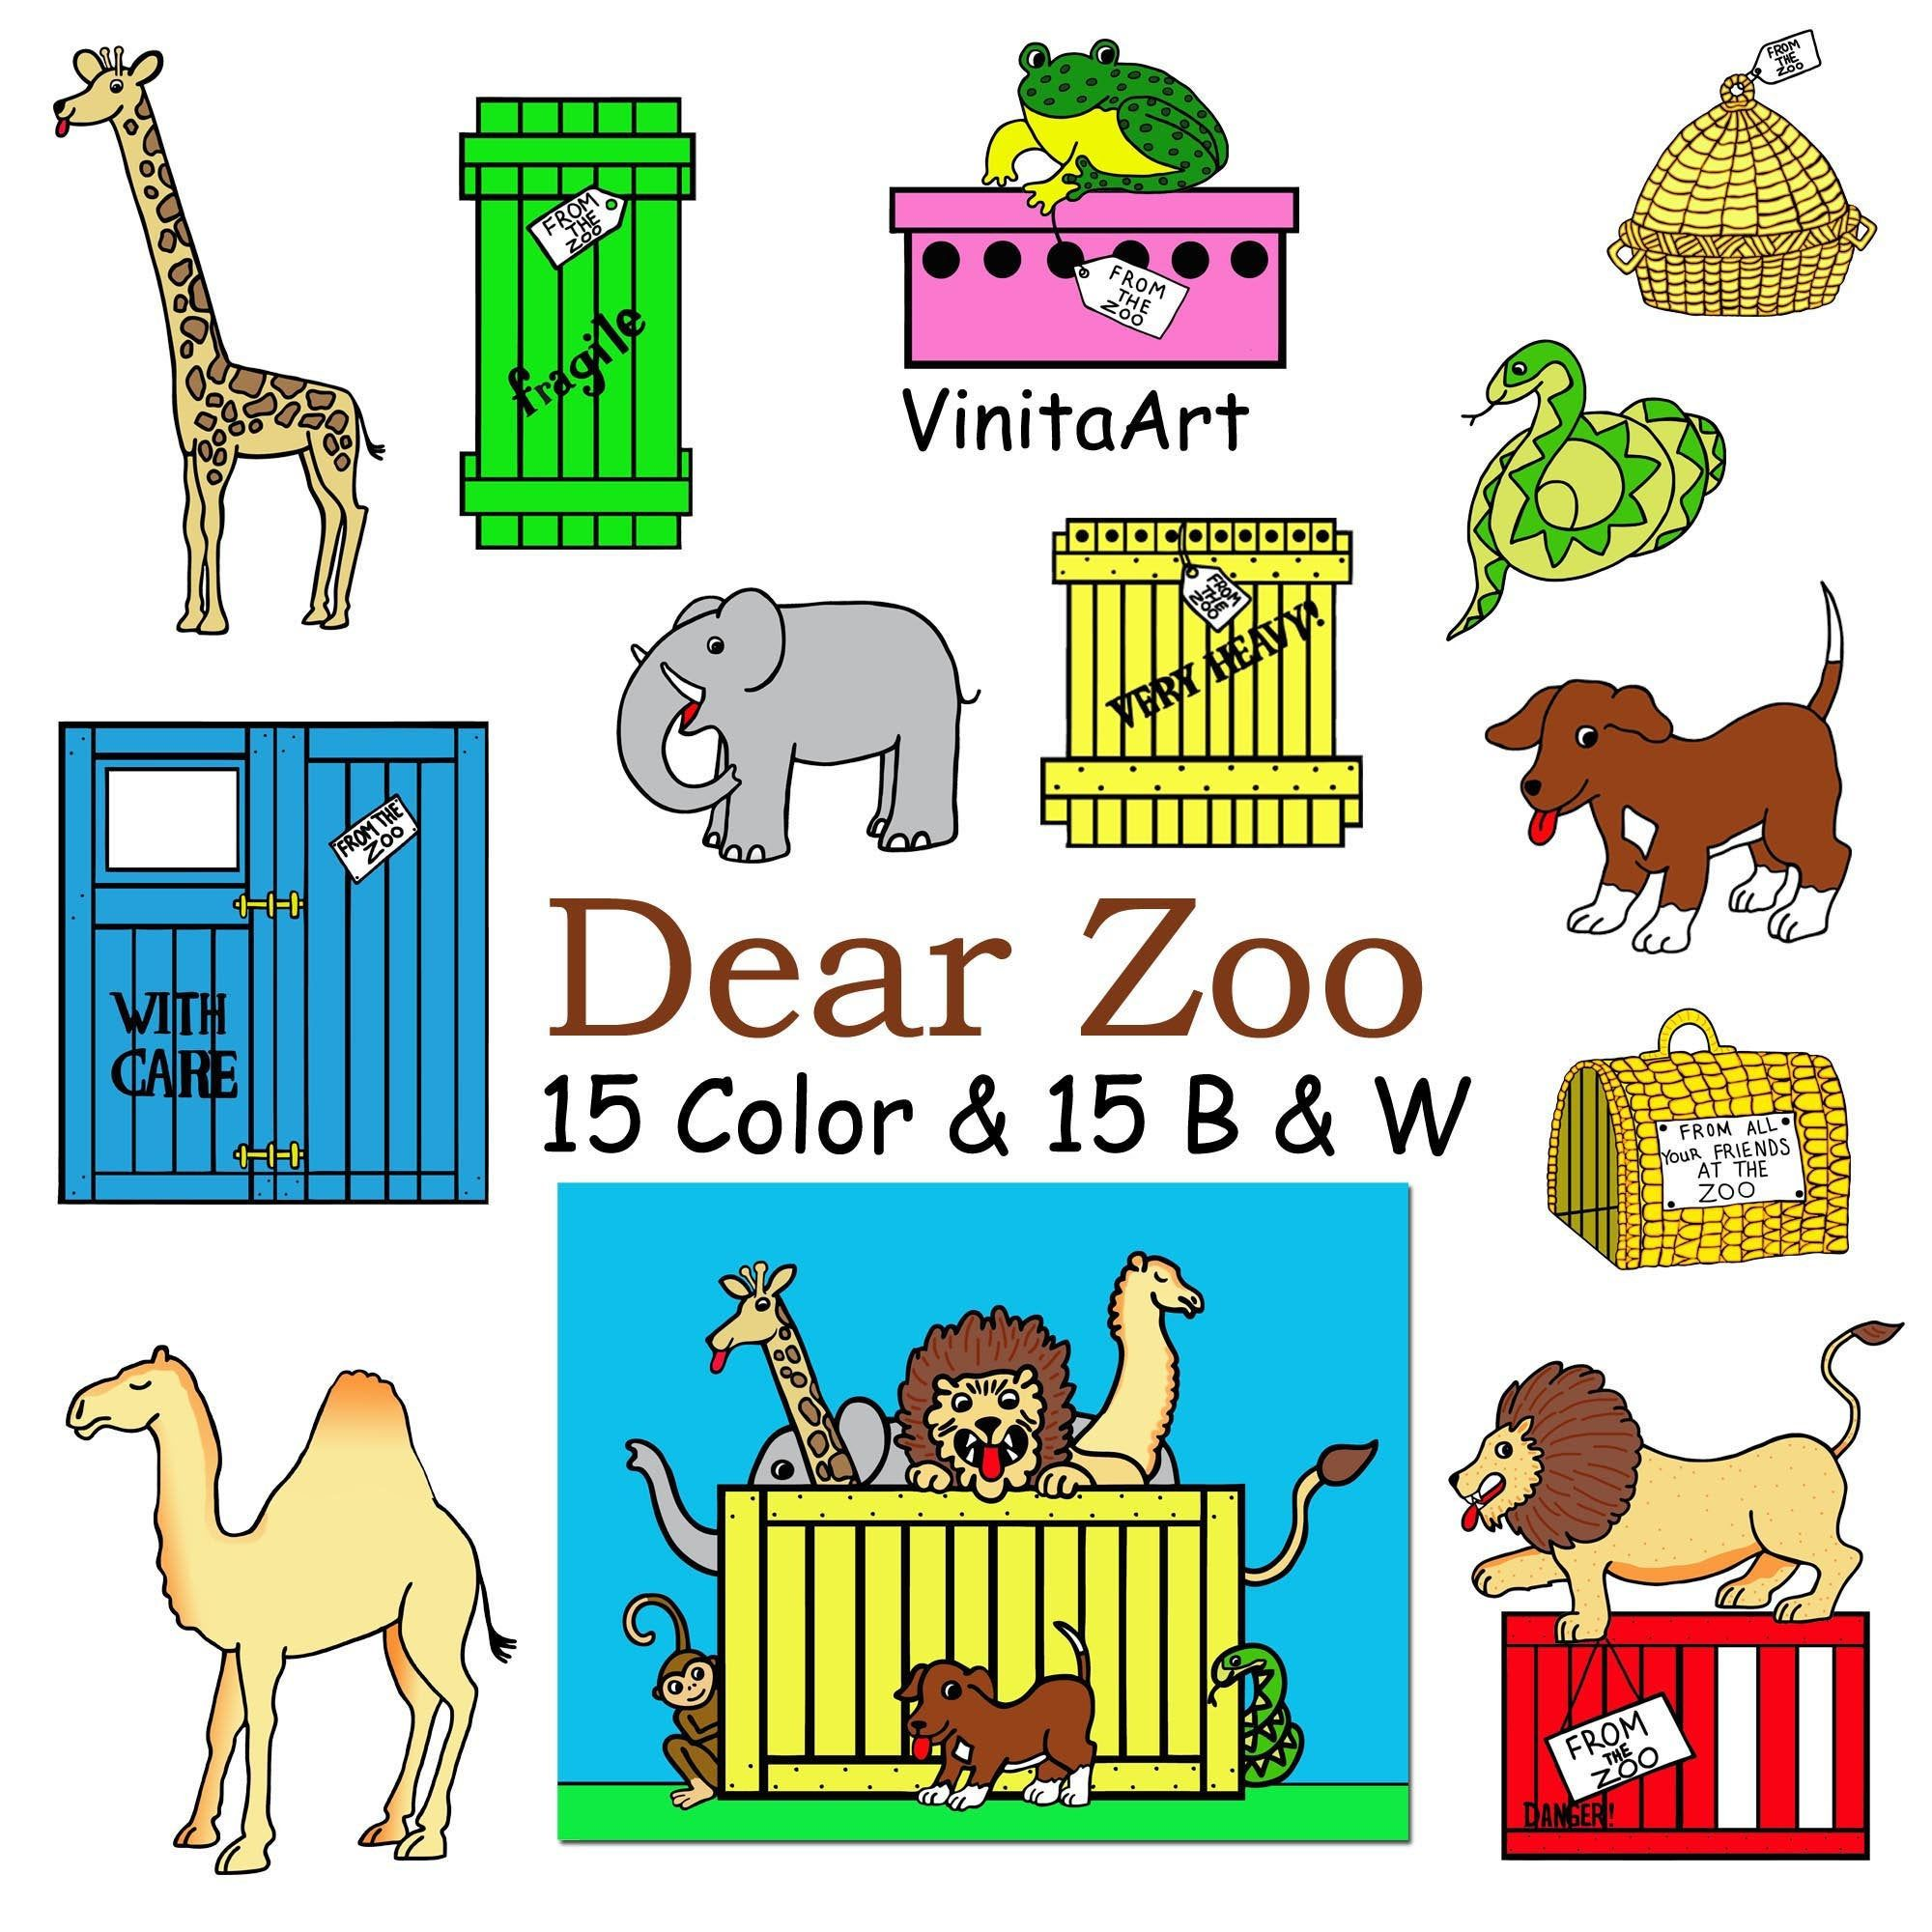 Dear Zoo Storybook Clip Art Printable Coloring Pages Teacher Resource Teaching Props Digital Download Zoo Animals Classic Story Dear Zoo Dear Zoo Book Story Books Illustrations